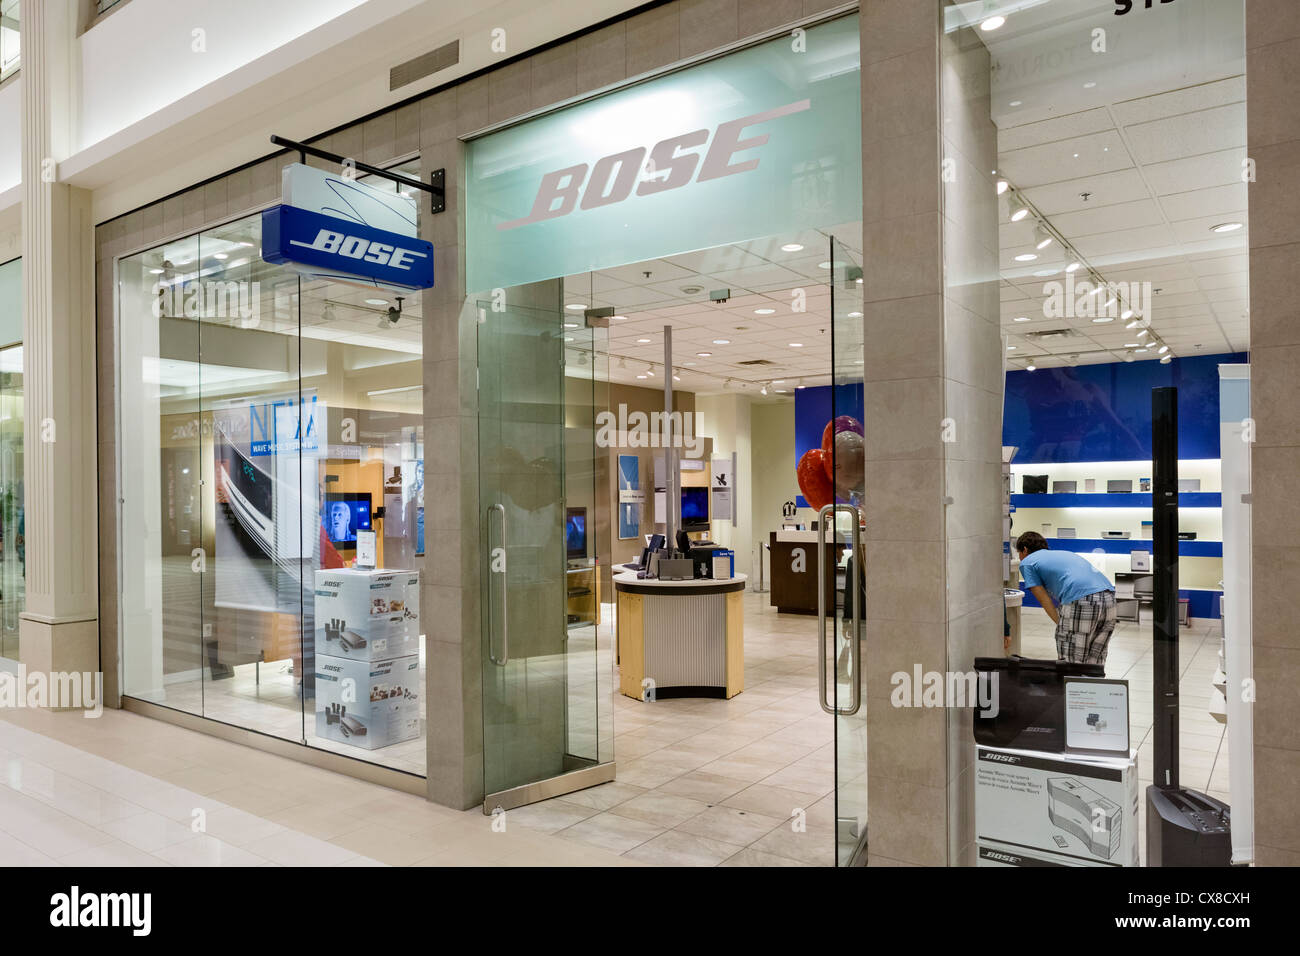 Bose store in the Mall of America, Bloomington, Minneapolis, Minnesota, USA - Stock Image